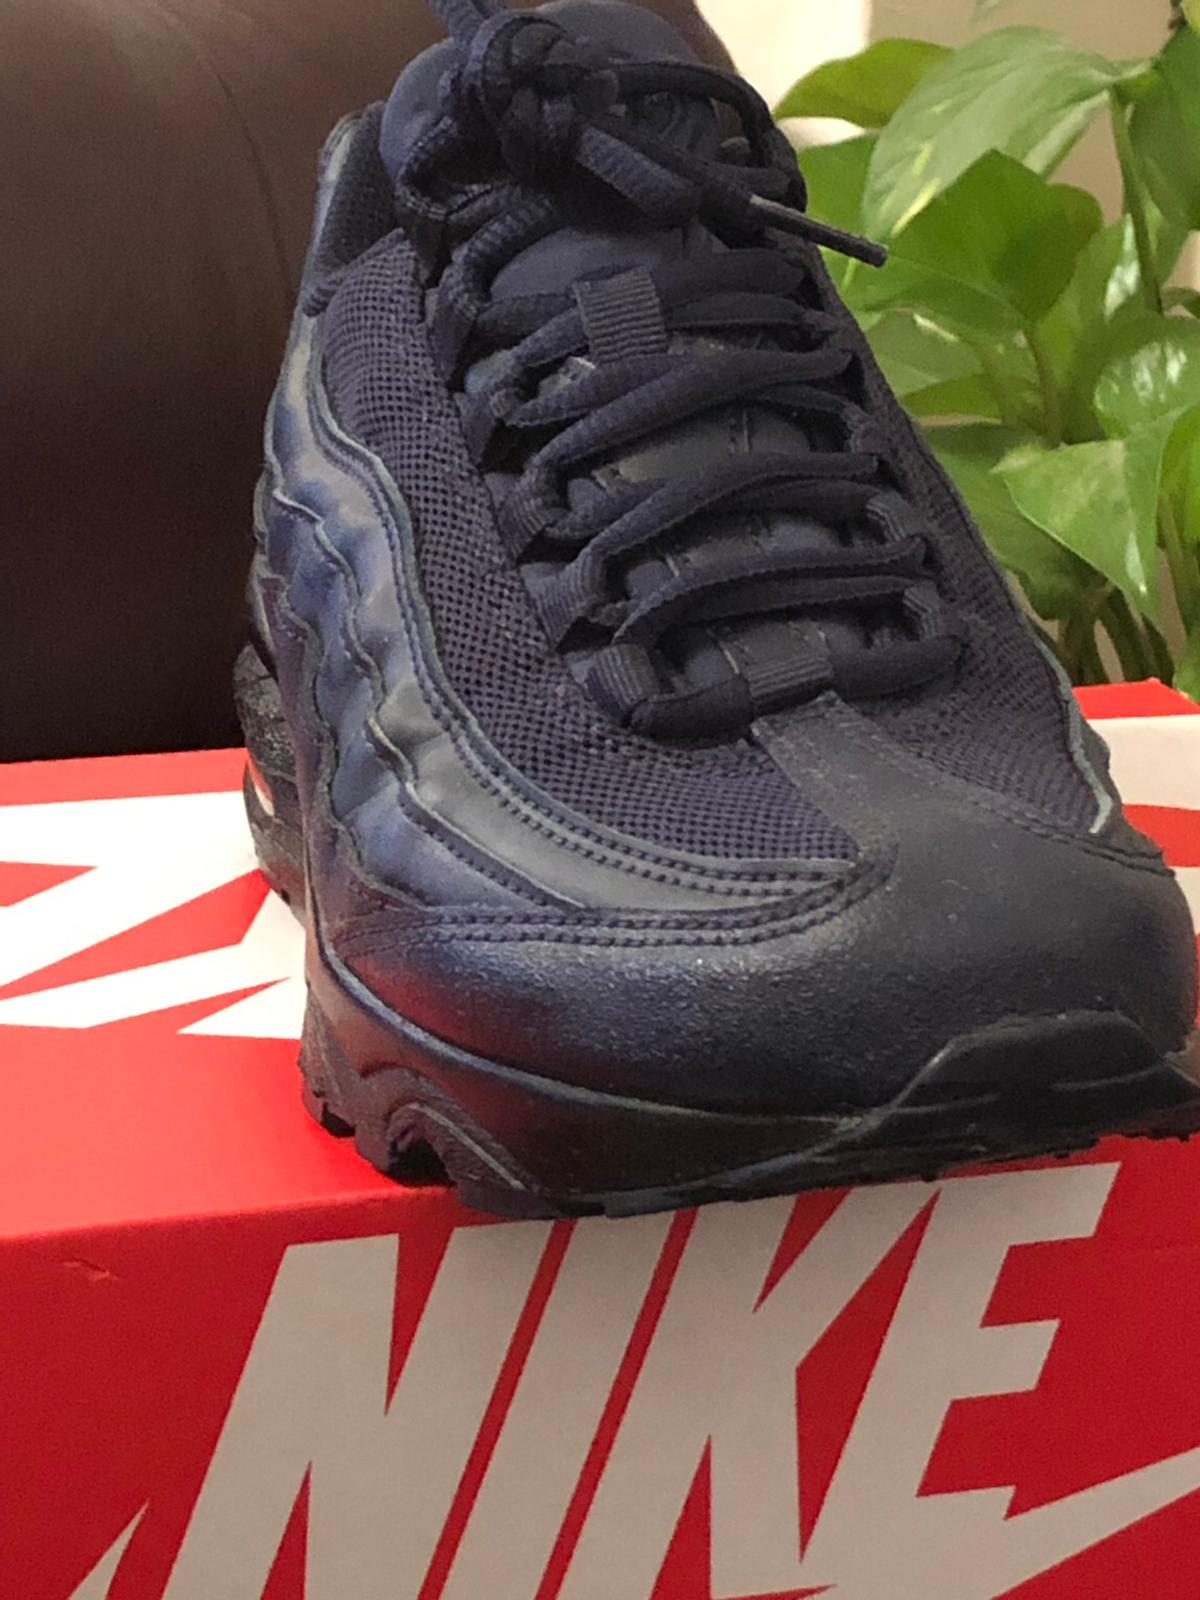 best loved 7024f 82dca Nike air max 95 Trainers UK size 6 navy